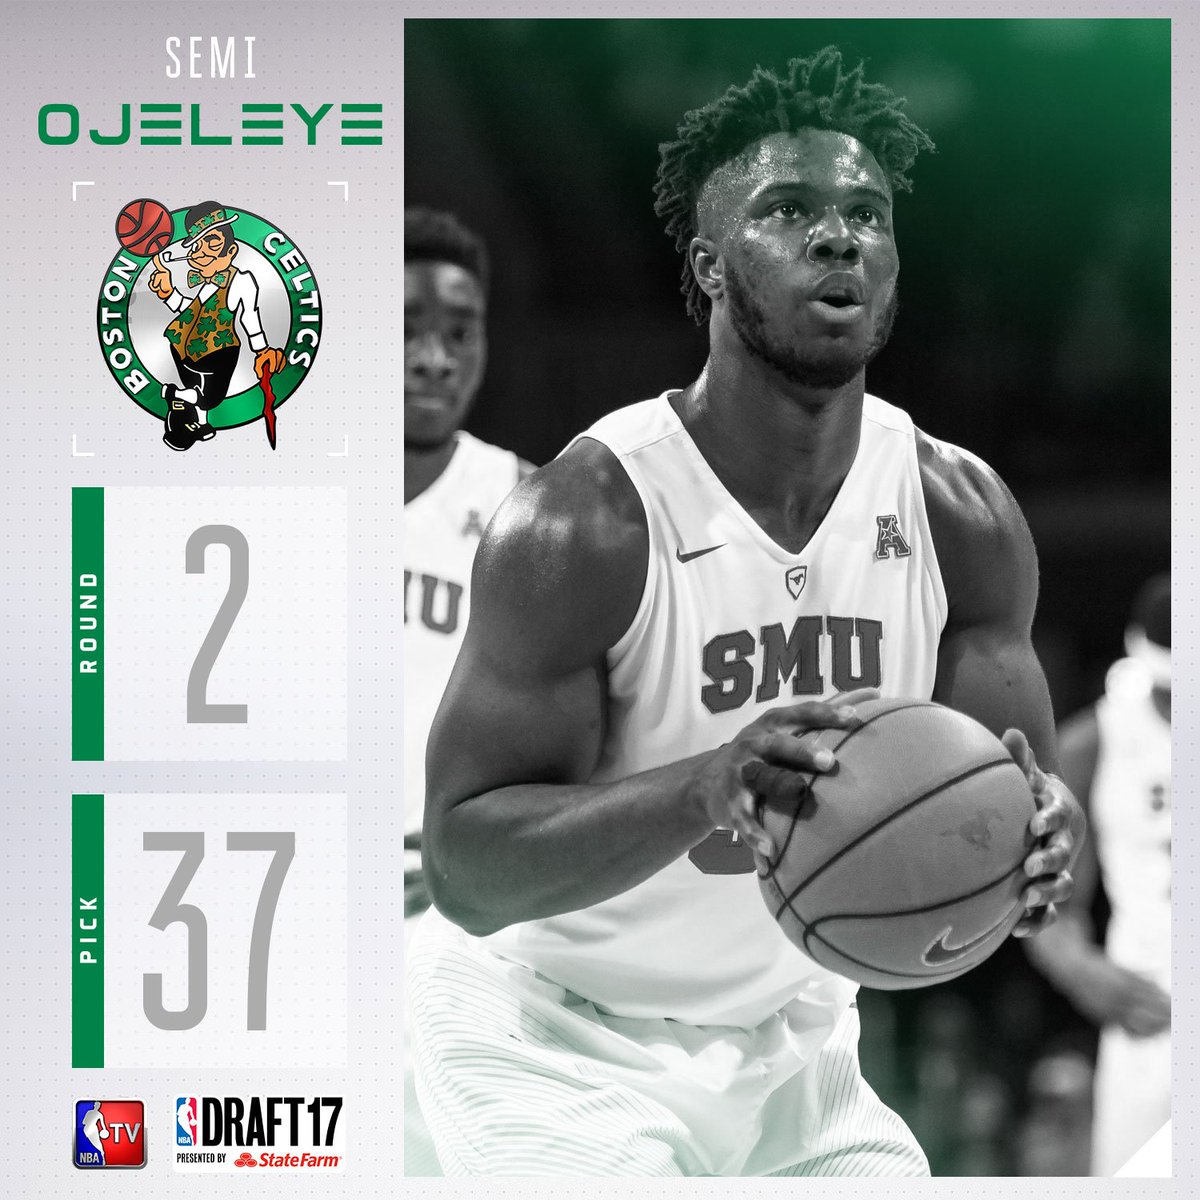 The @celtics select Semi Ojeleye with the #37 pick in the 2017 #NBADra...